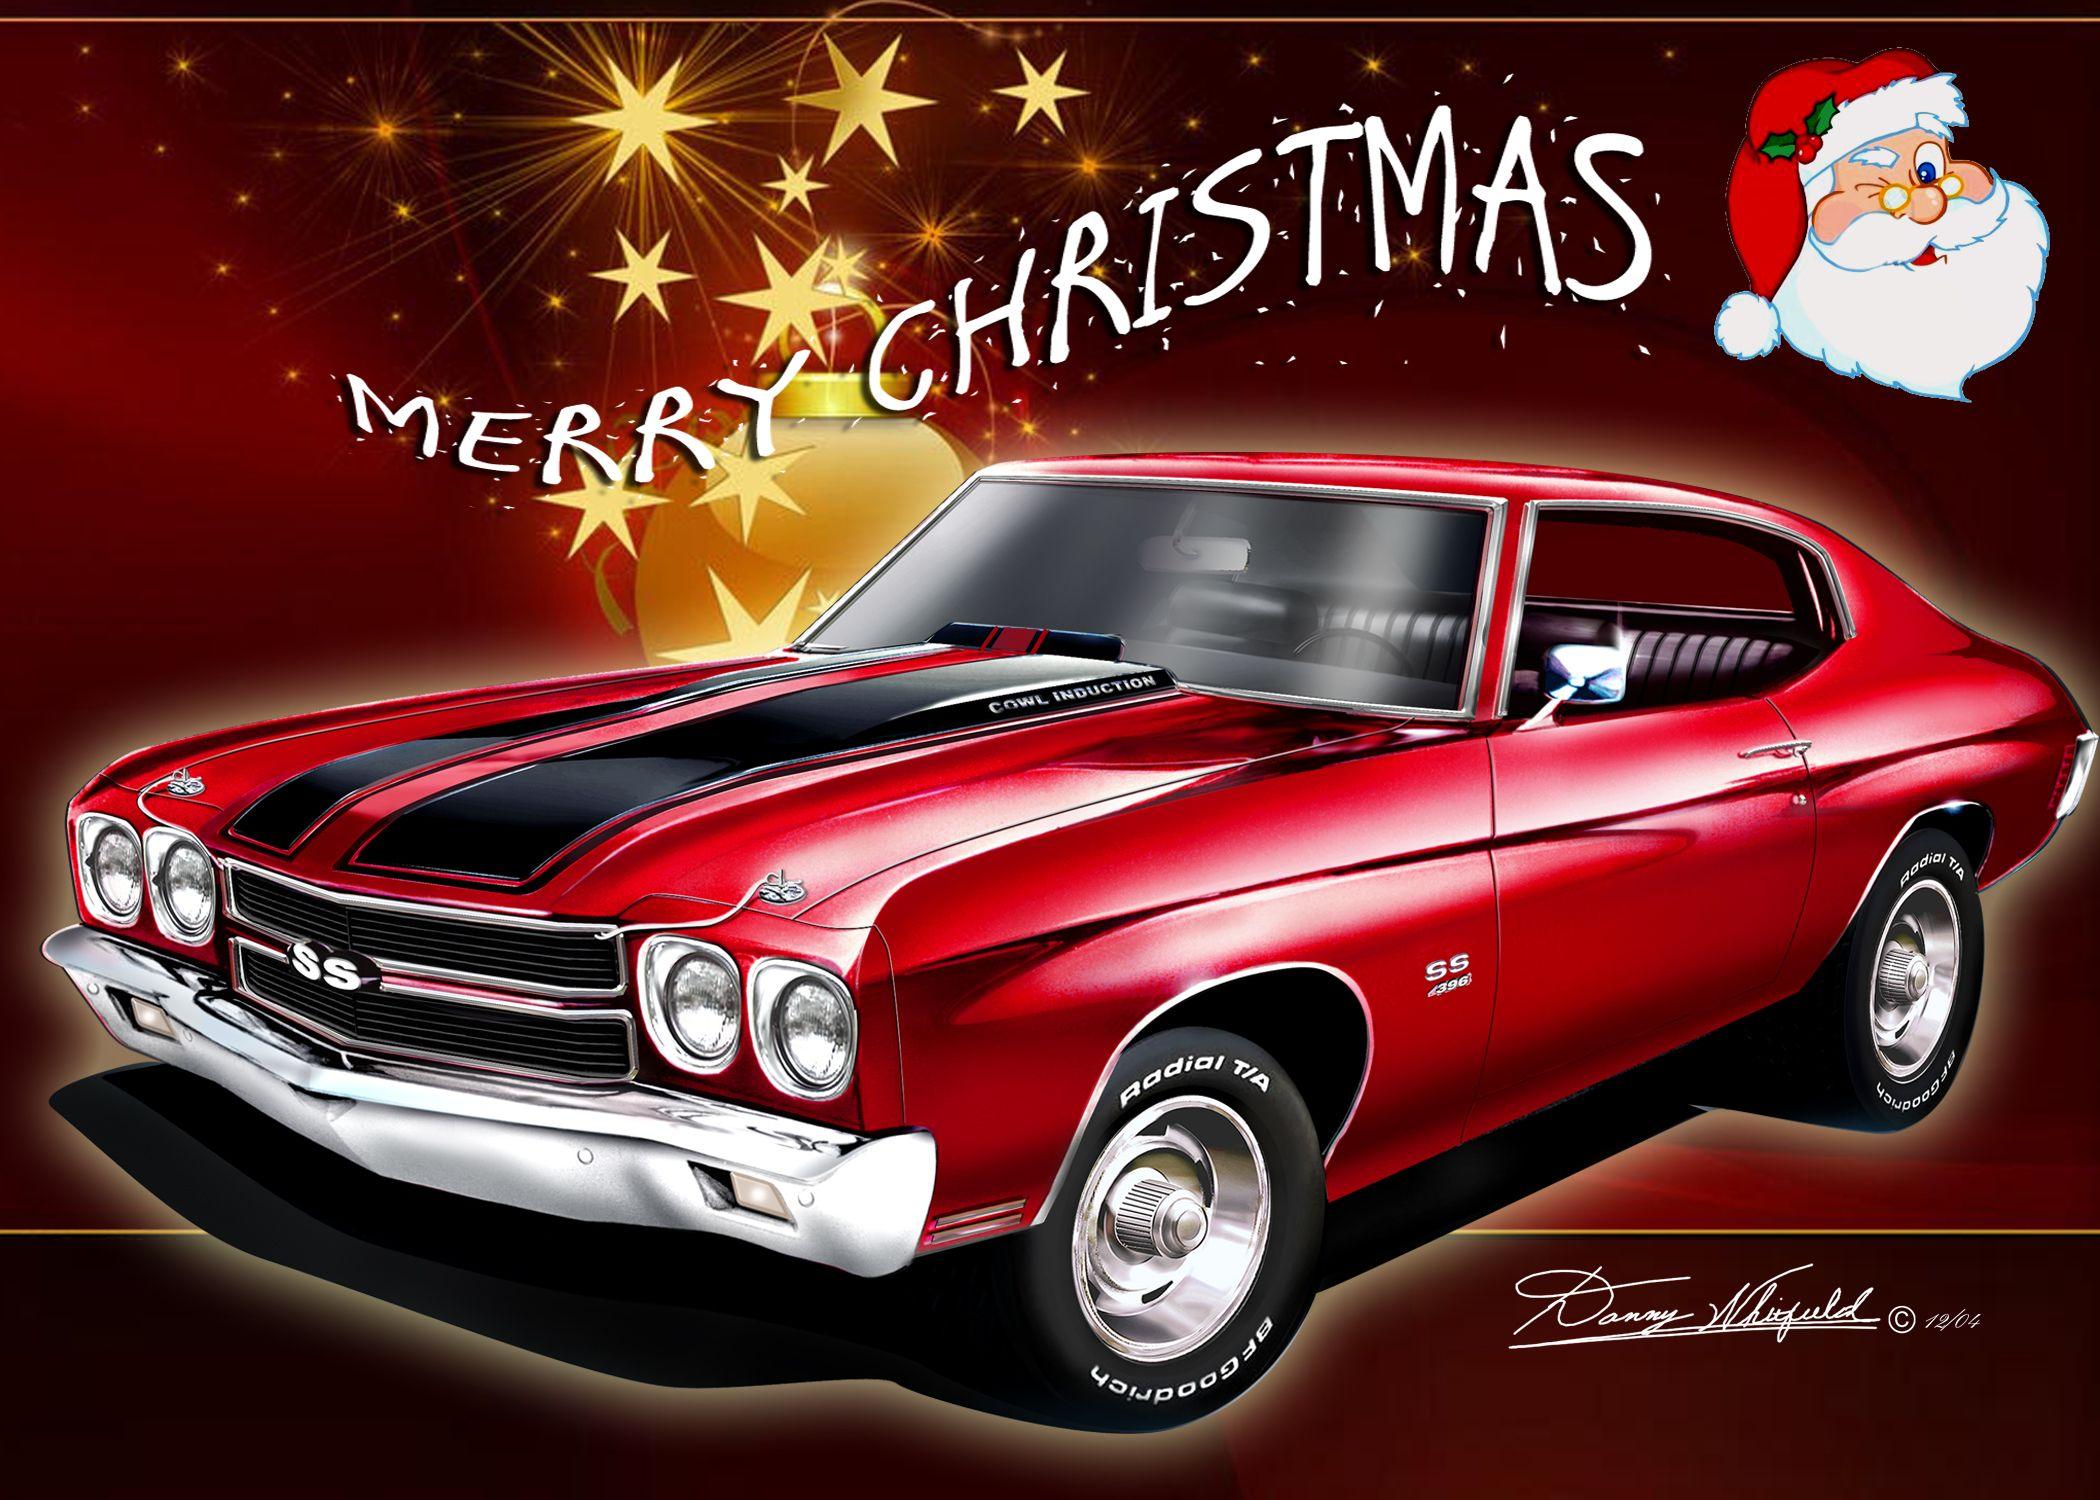 Chevy Chevelle Say S Merry Christmas From The Automotive Art Of